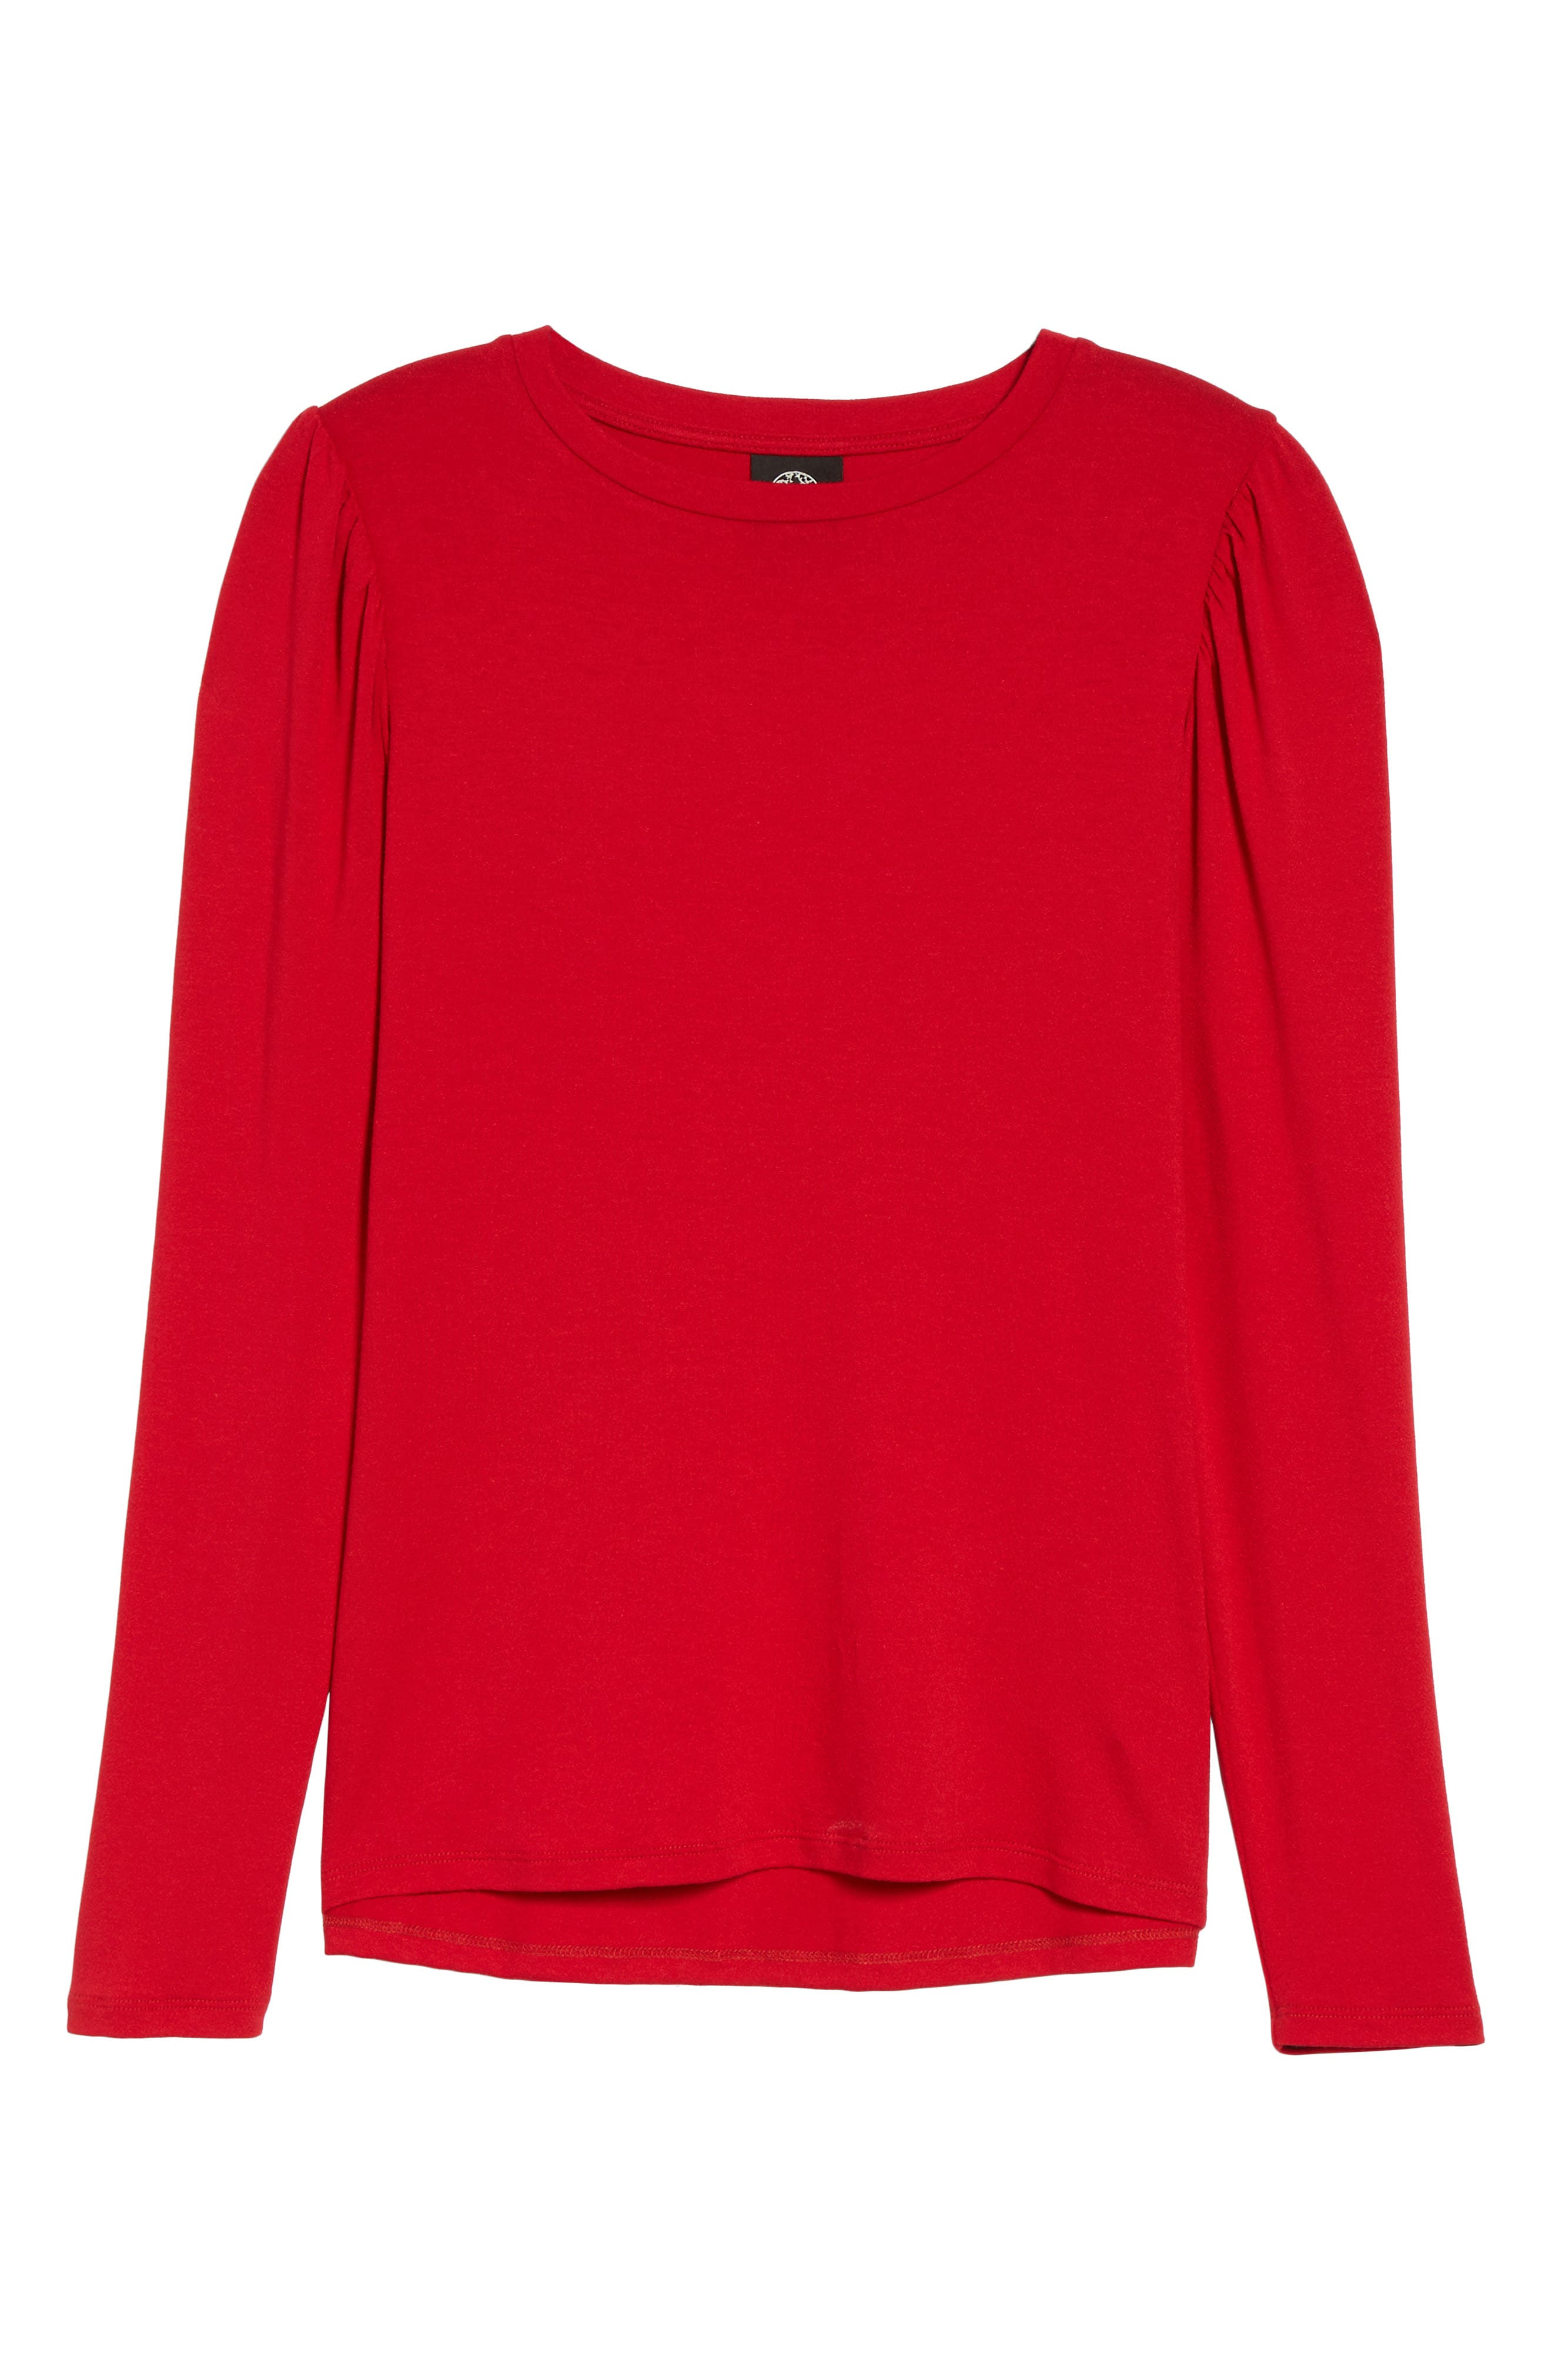 Bishop Knit Top,                             Alternate thumbnail 6, color,                             Red Chili